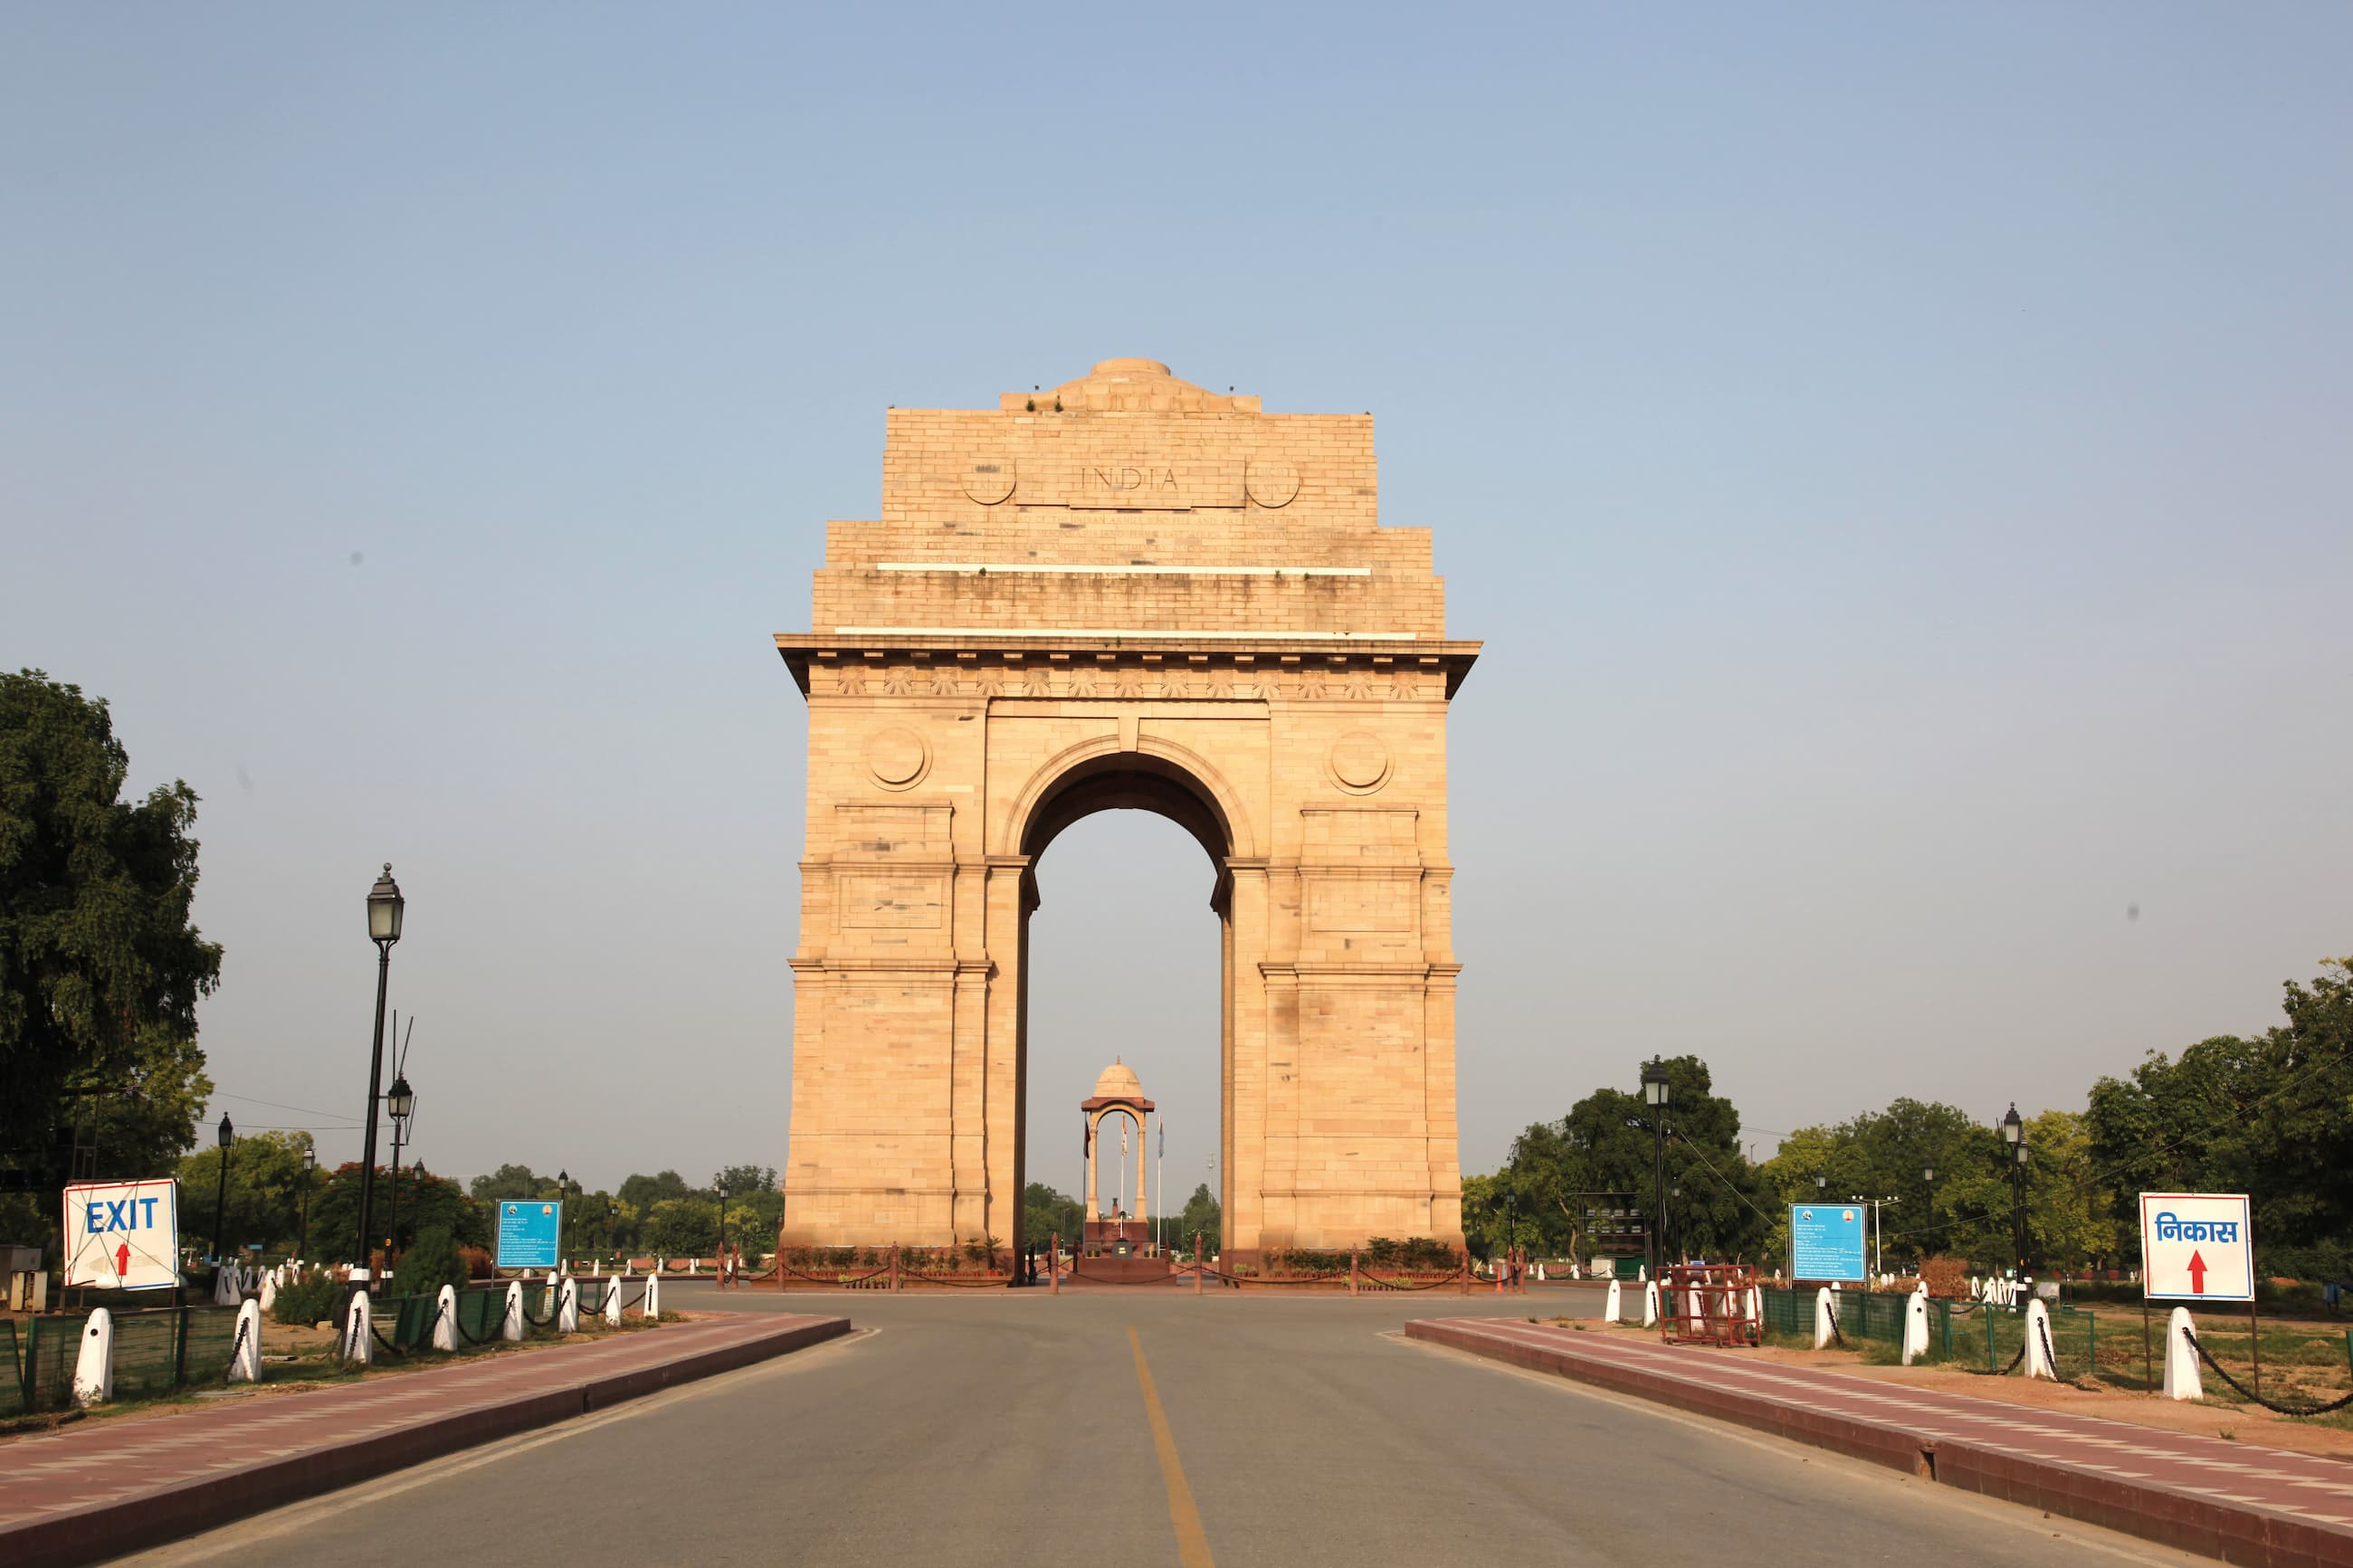 The view of the India Gate on June 11, 2020, following a period of lockdown due to the pandemic shows cleaner air with less smog.